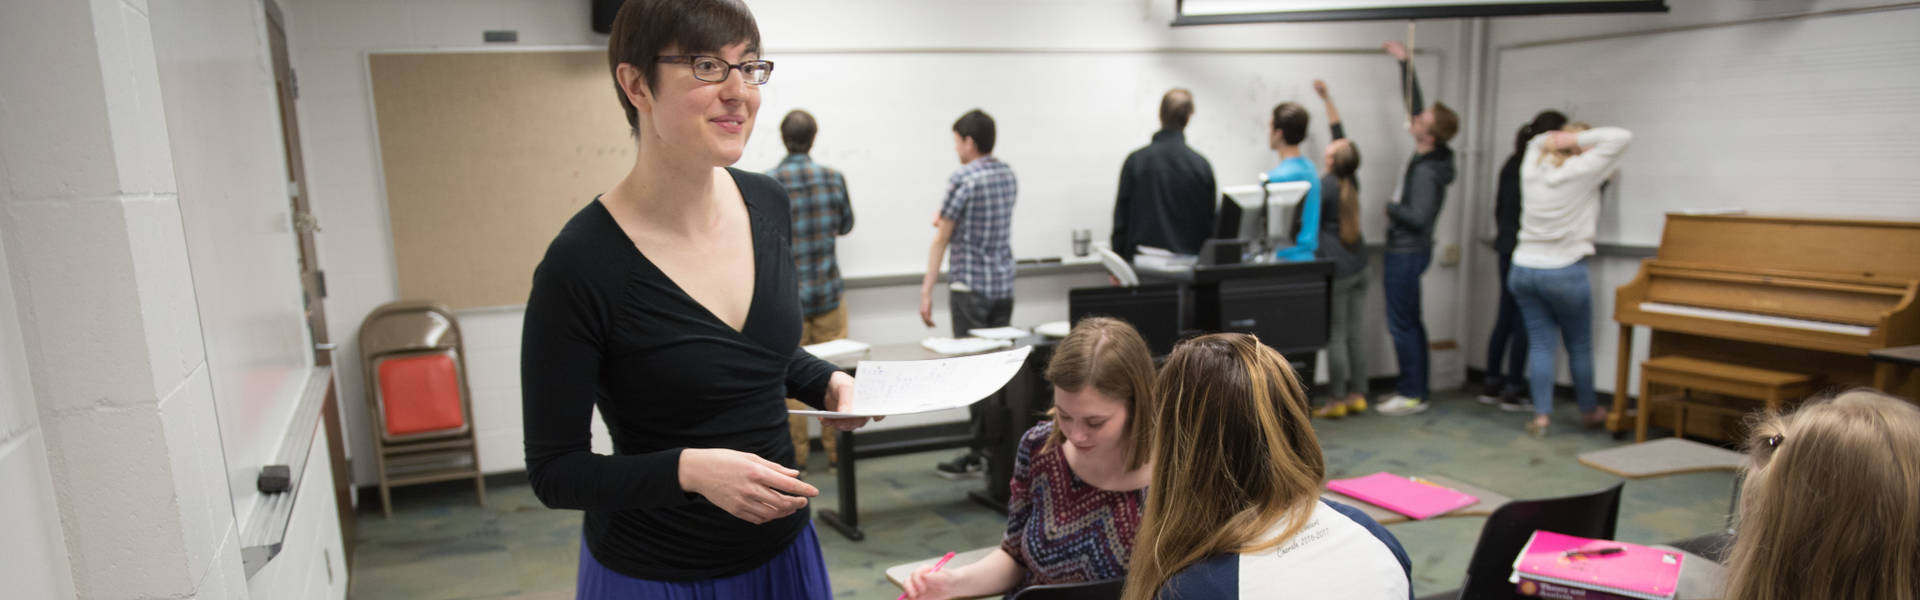 UW-Eau Claire professor and music theory students engaged in active learning